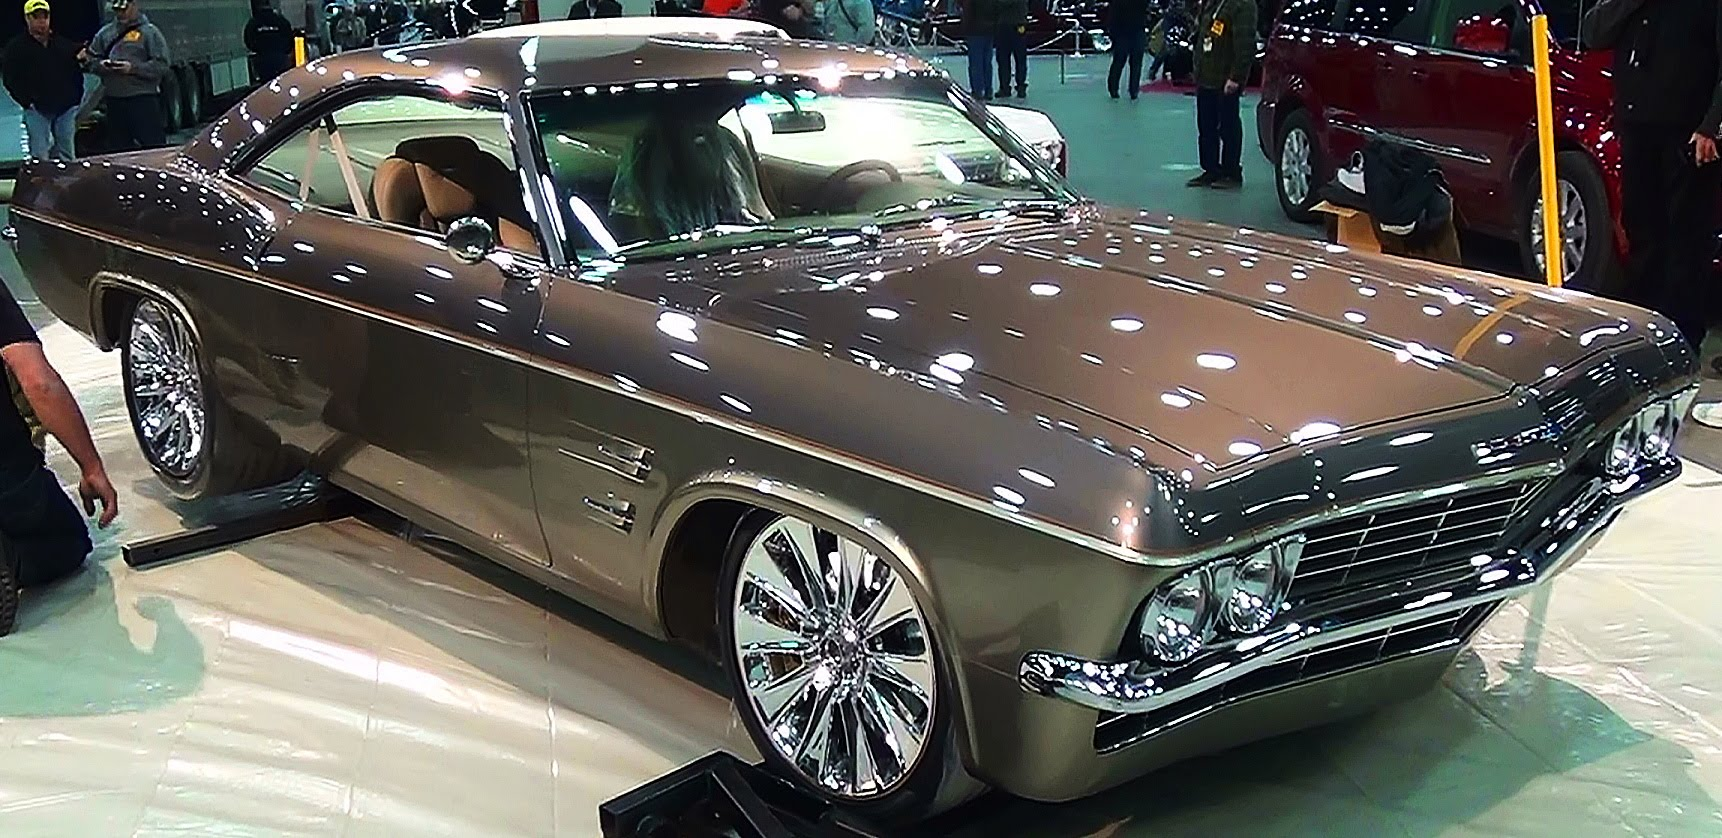 65 impala the imposter foose design 2015 ridler winner. Black Bedroom Furniture Sets. Home Design Ideas